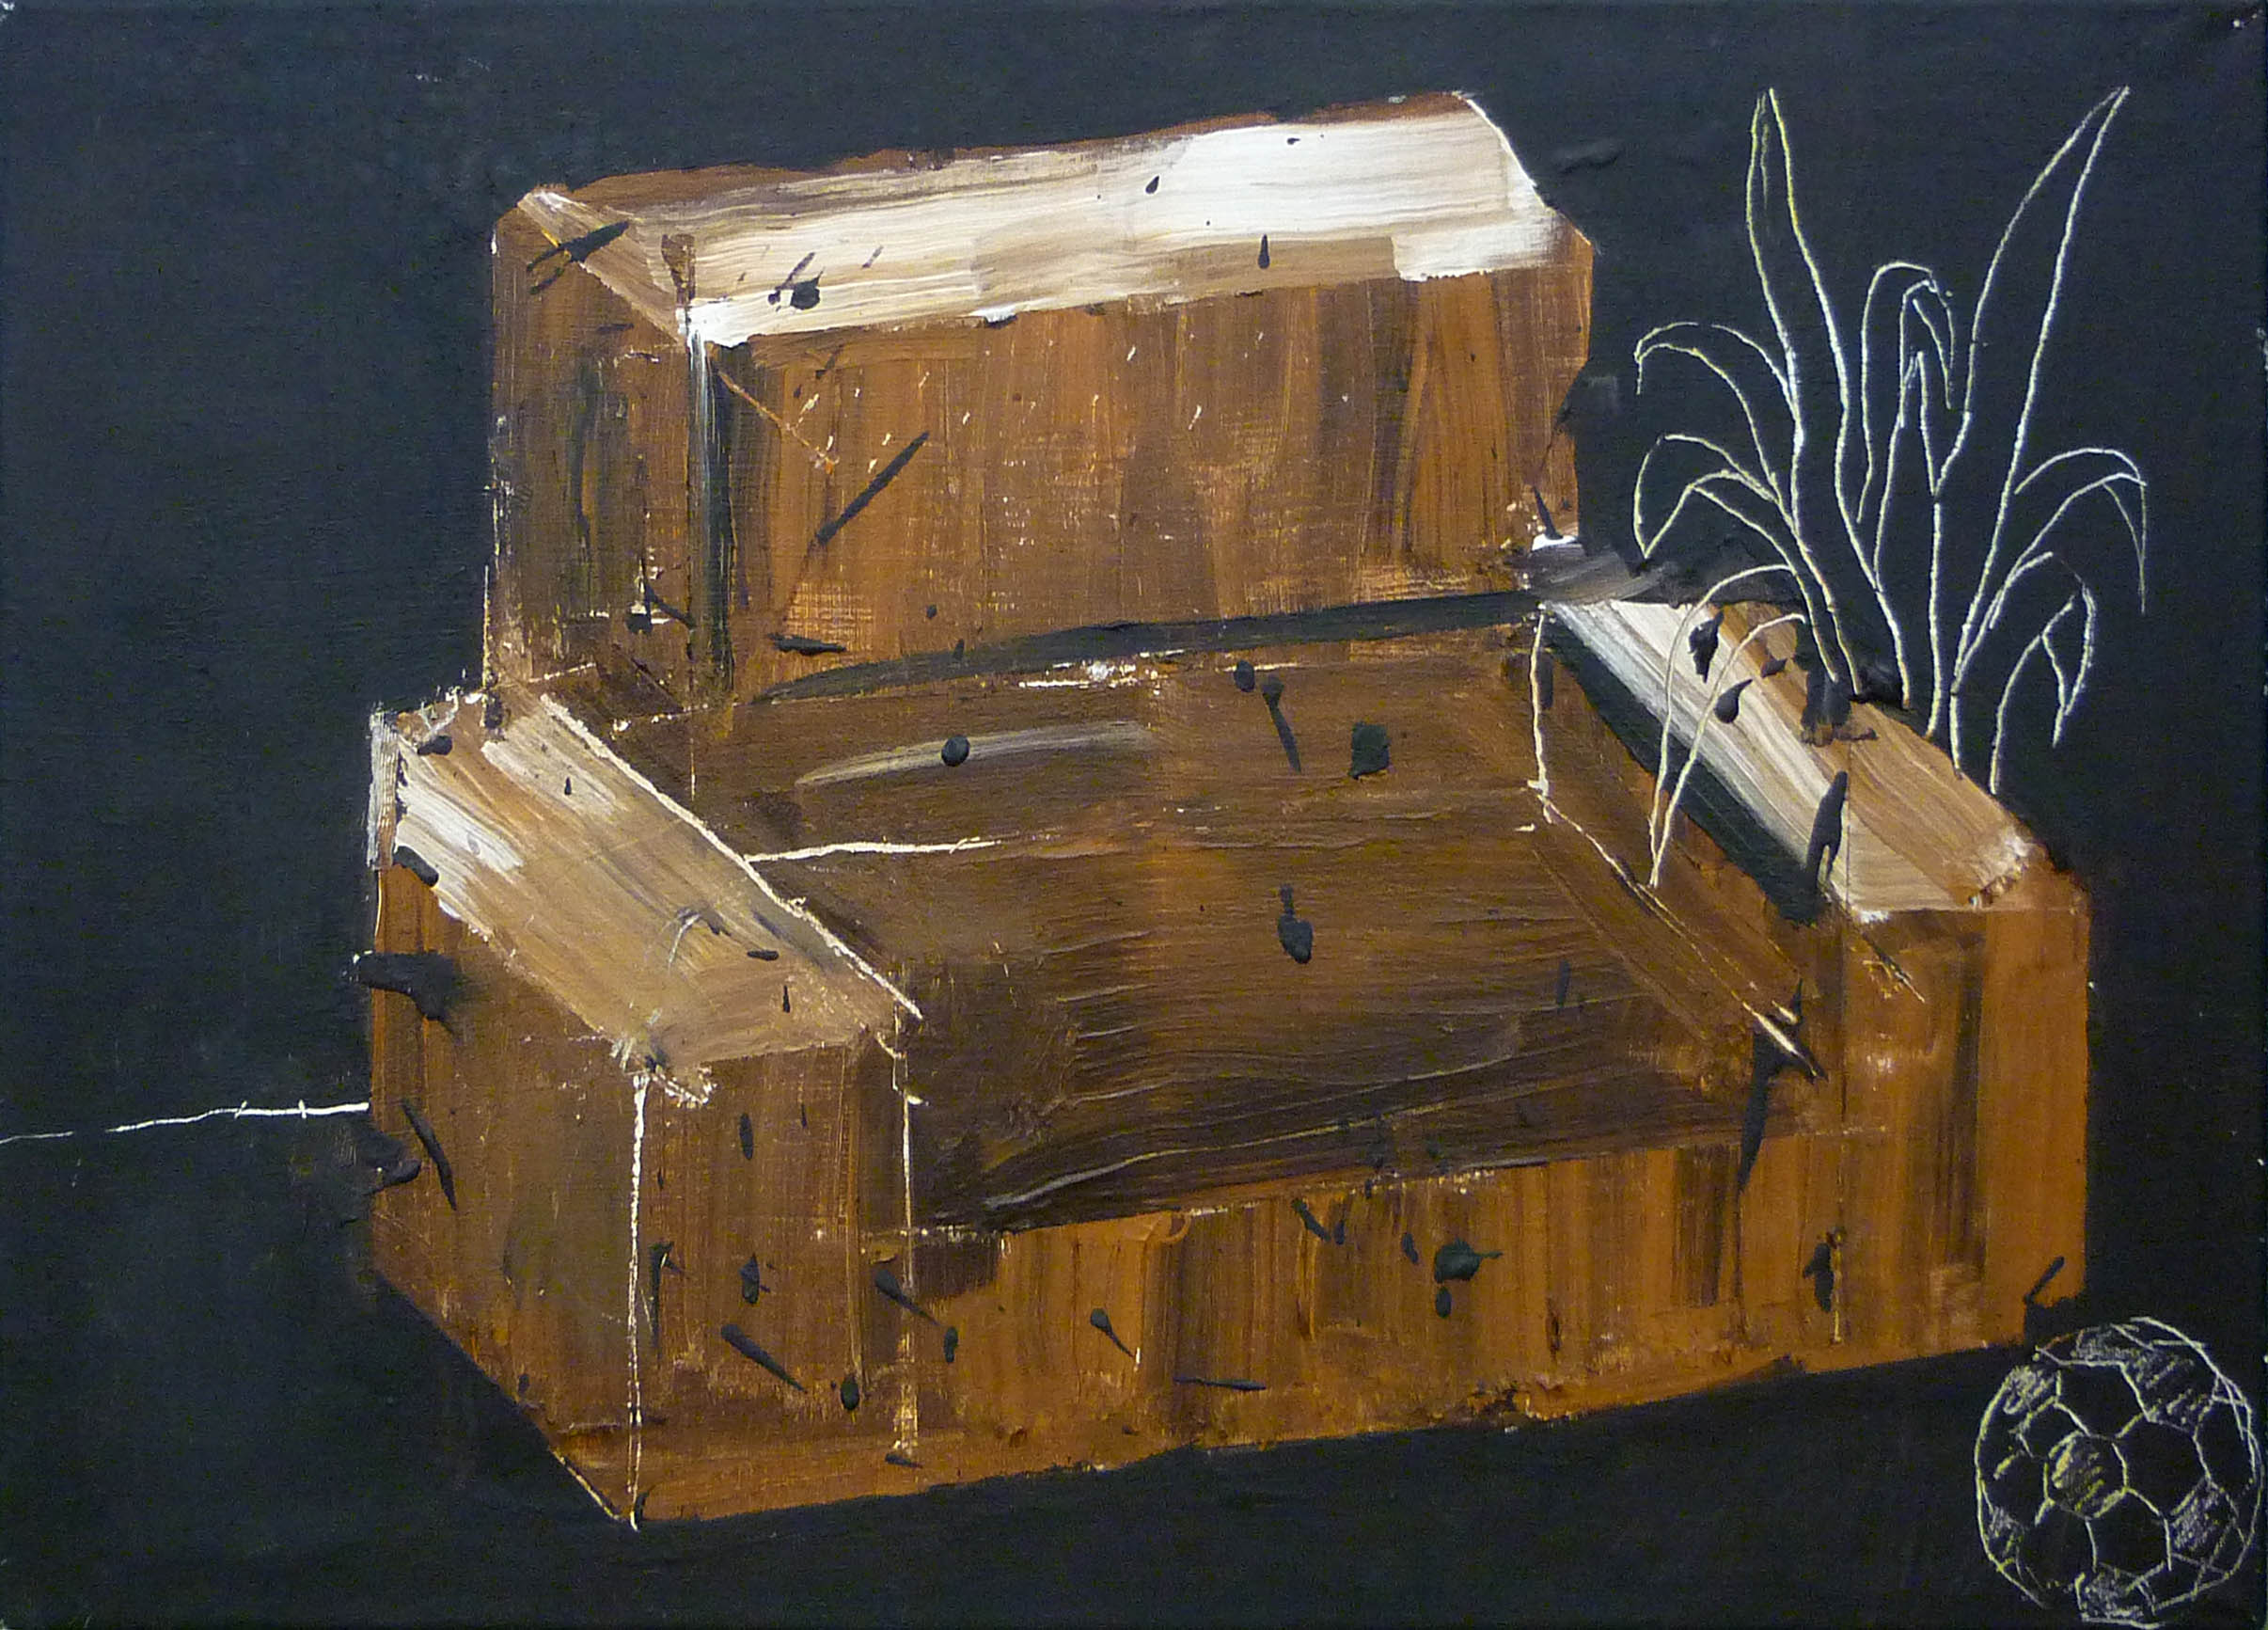 hnědý gauč / couch in brown, 70x50 cm, akryl na plátně / acrylic on canvas, 2013